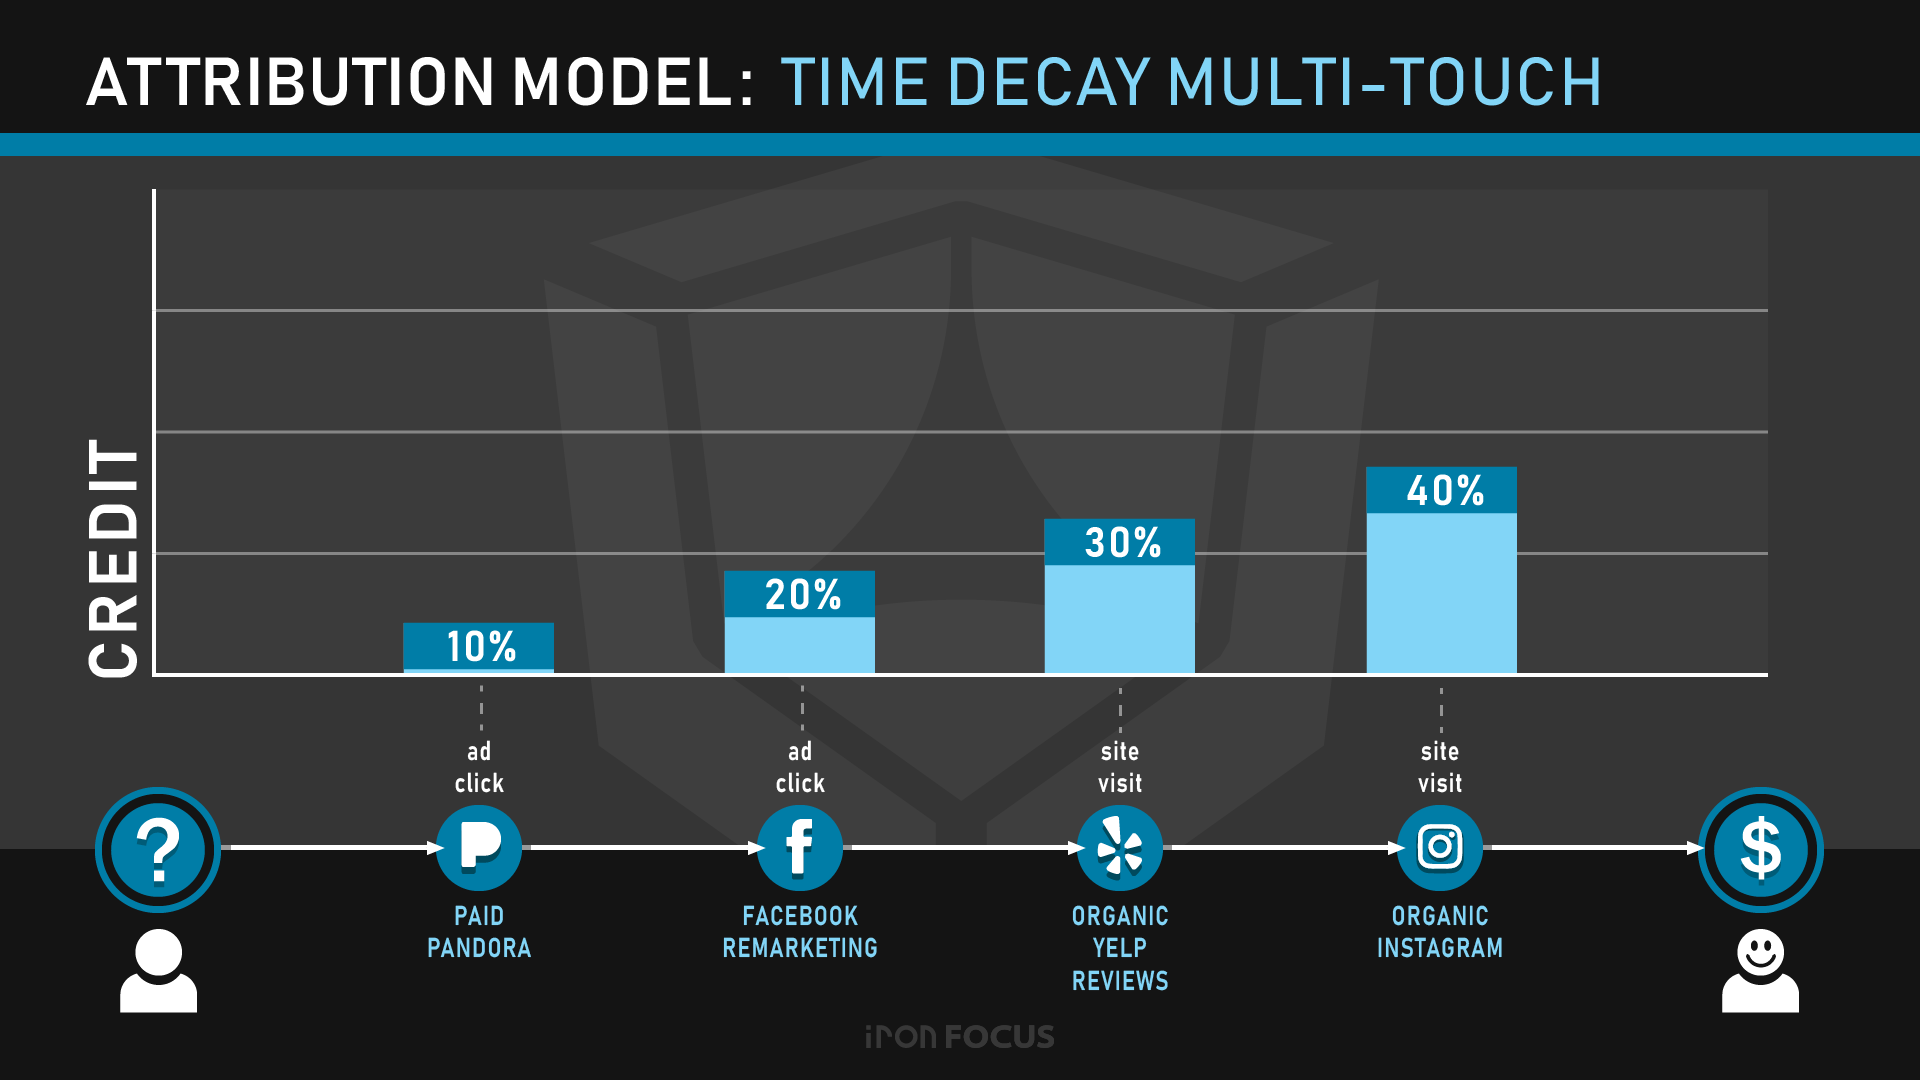 Attribution Model: Time Decay Multi-Touch